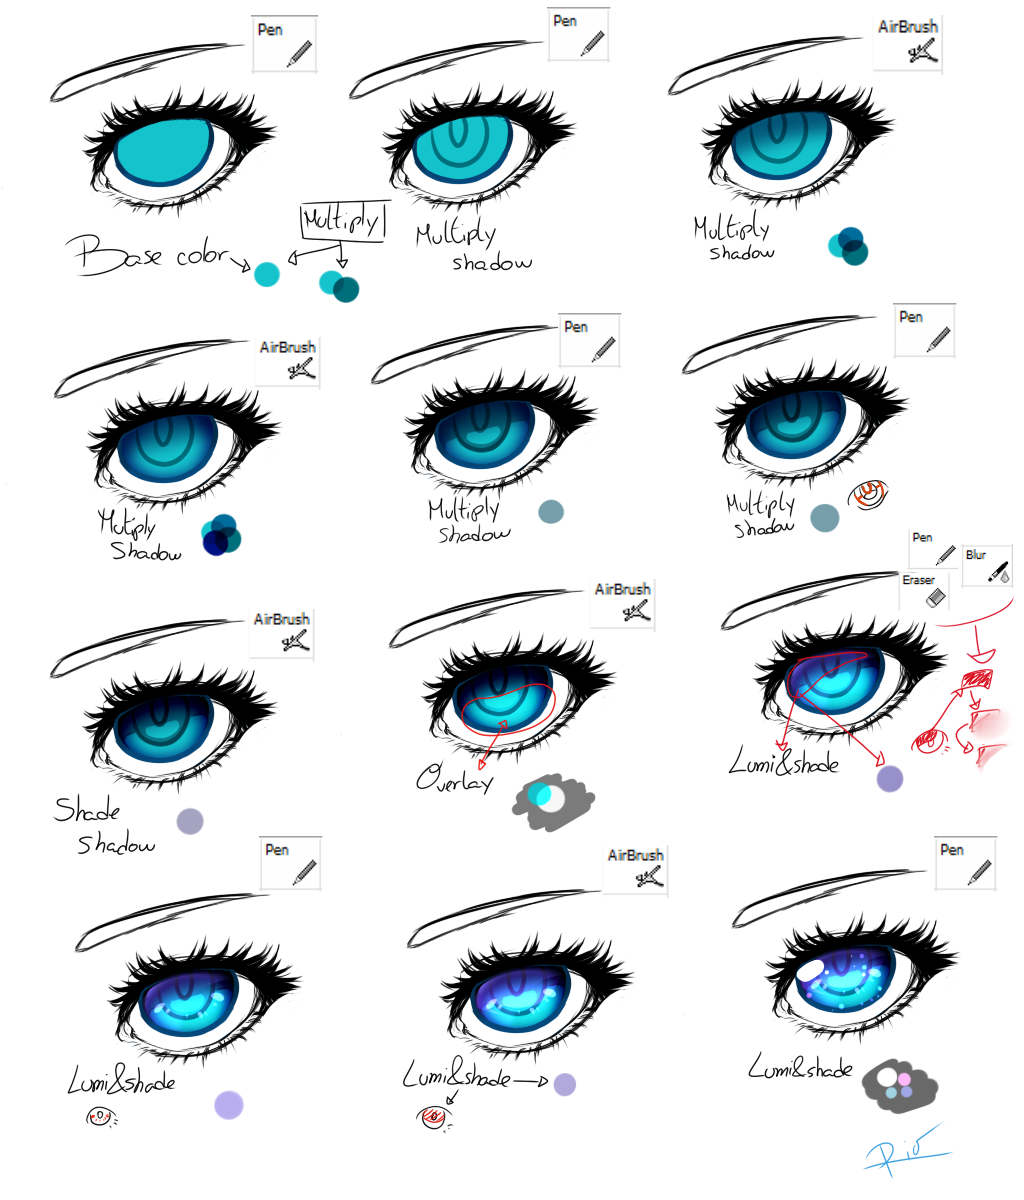 Blue Eye Tutorial By Coortenshi On Deviantart Anime Eye Drawing Eye Drawing Tutorials Blue Drawings